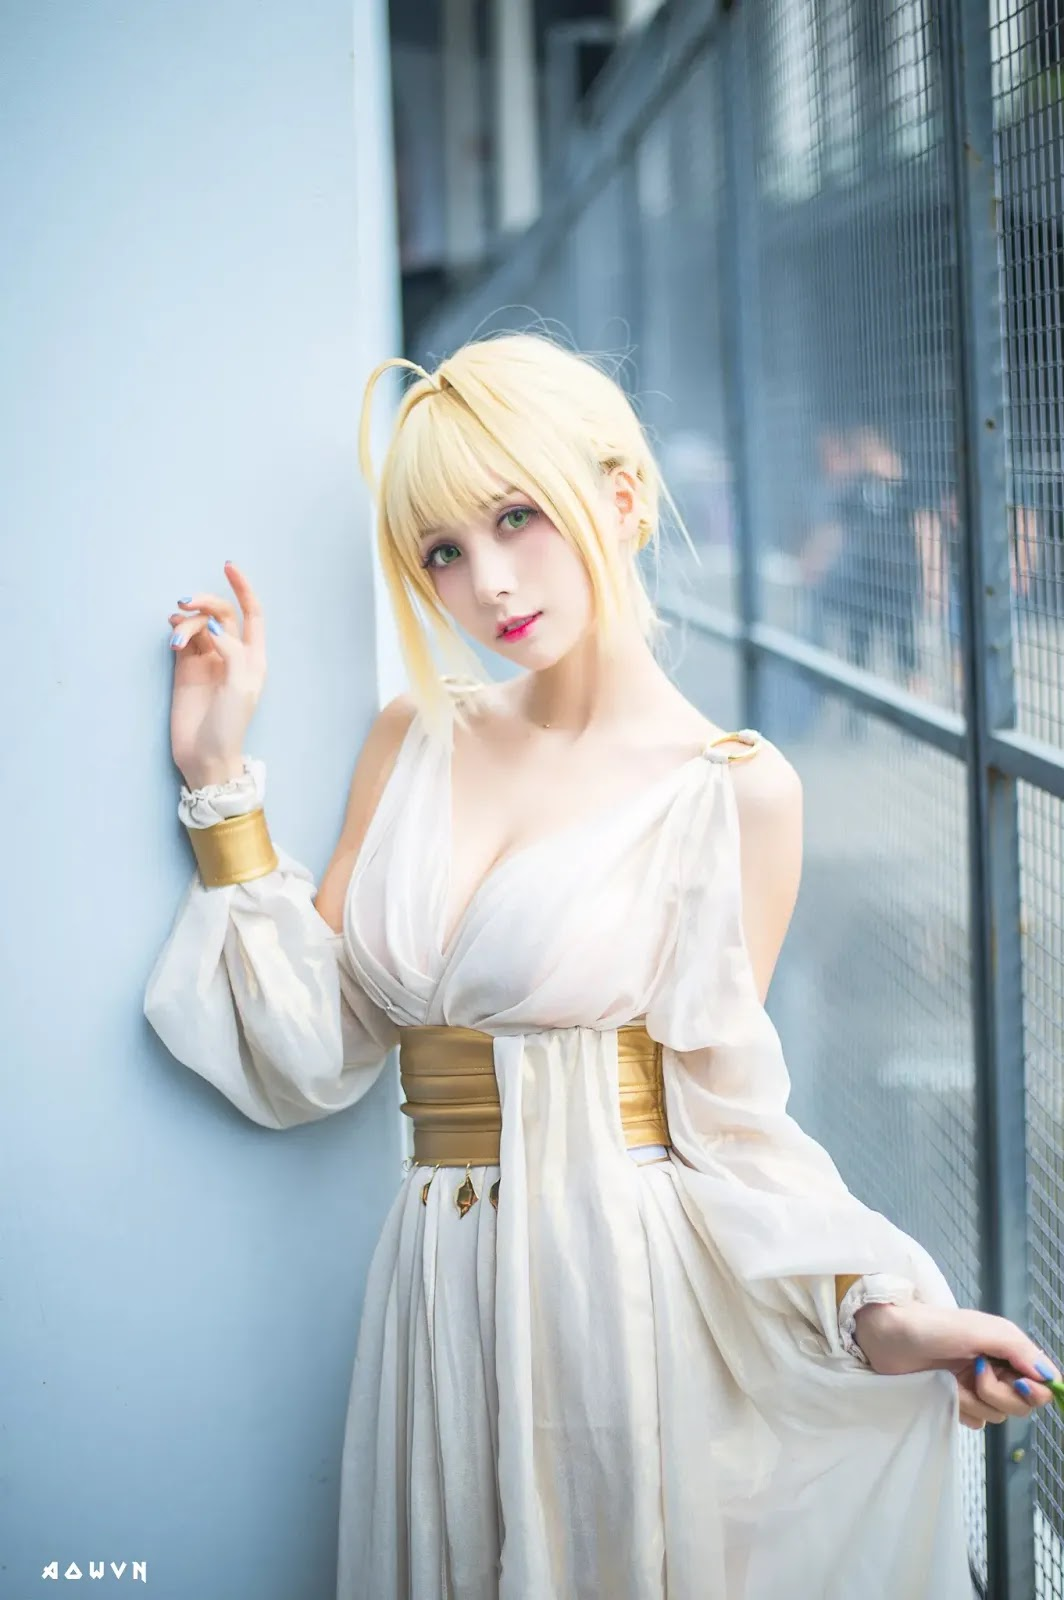 AowVN.org minz%2B%25282%2529 - [ Cosplay ] Nero - Saber anime Fate by Xia Mei Jiang tuyệt đẹp | AowVN Wallpapers